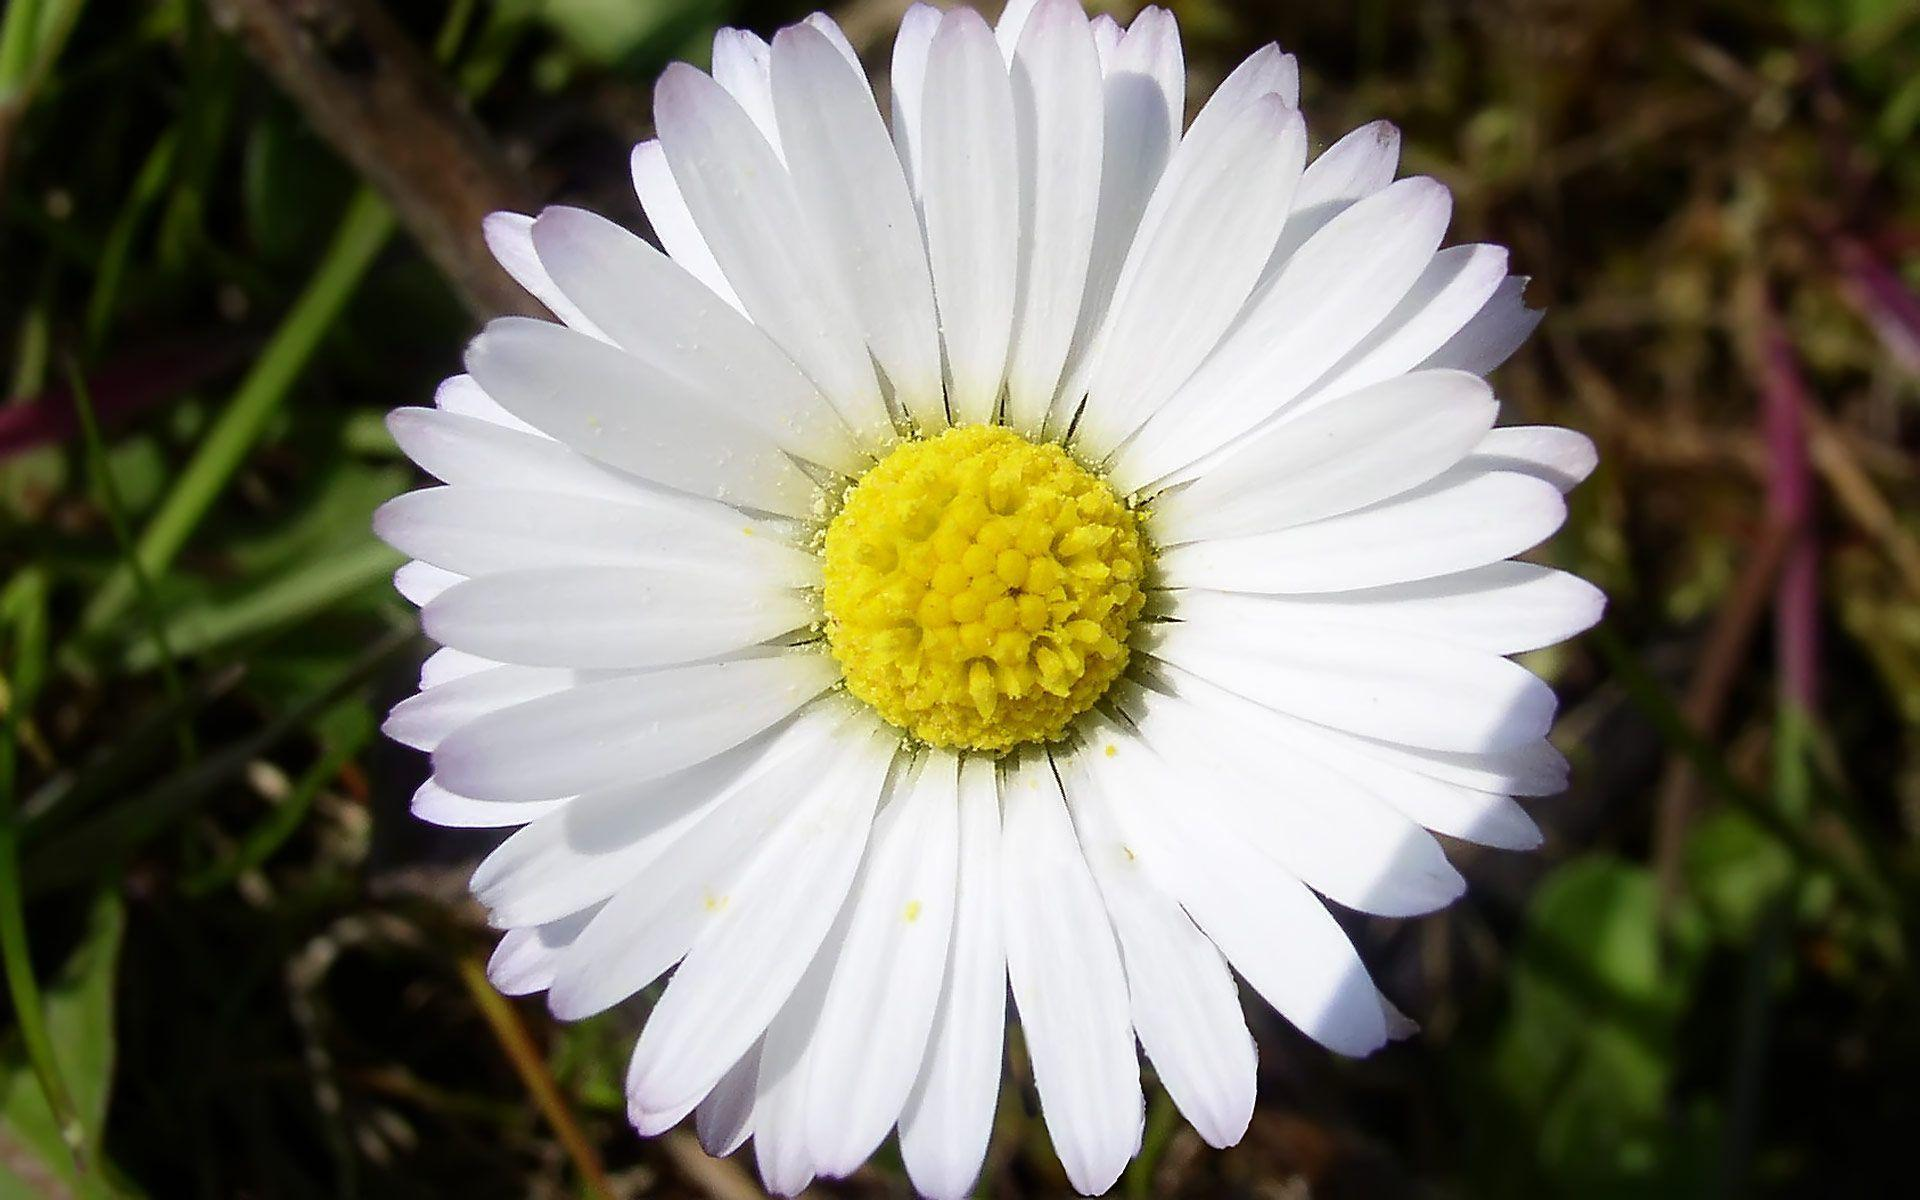 Daisy flower wallpapers wallpaper cave wallpapers for daisy flower wallpaper tumblr izmirmasajfo